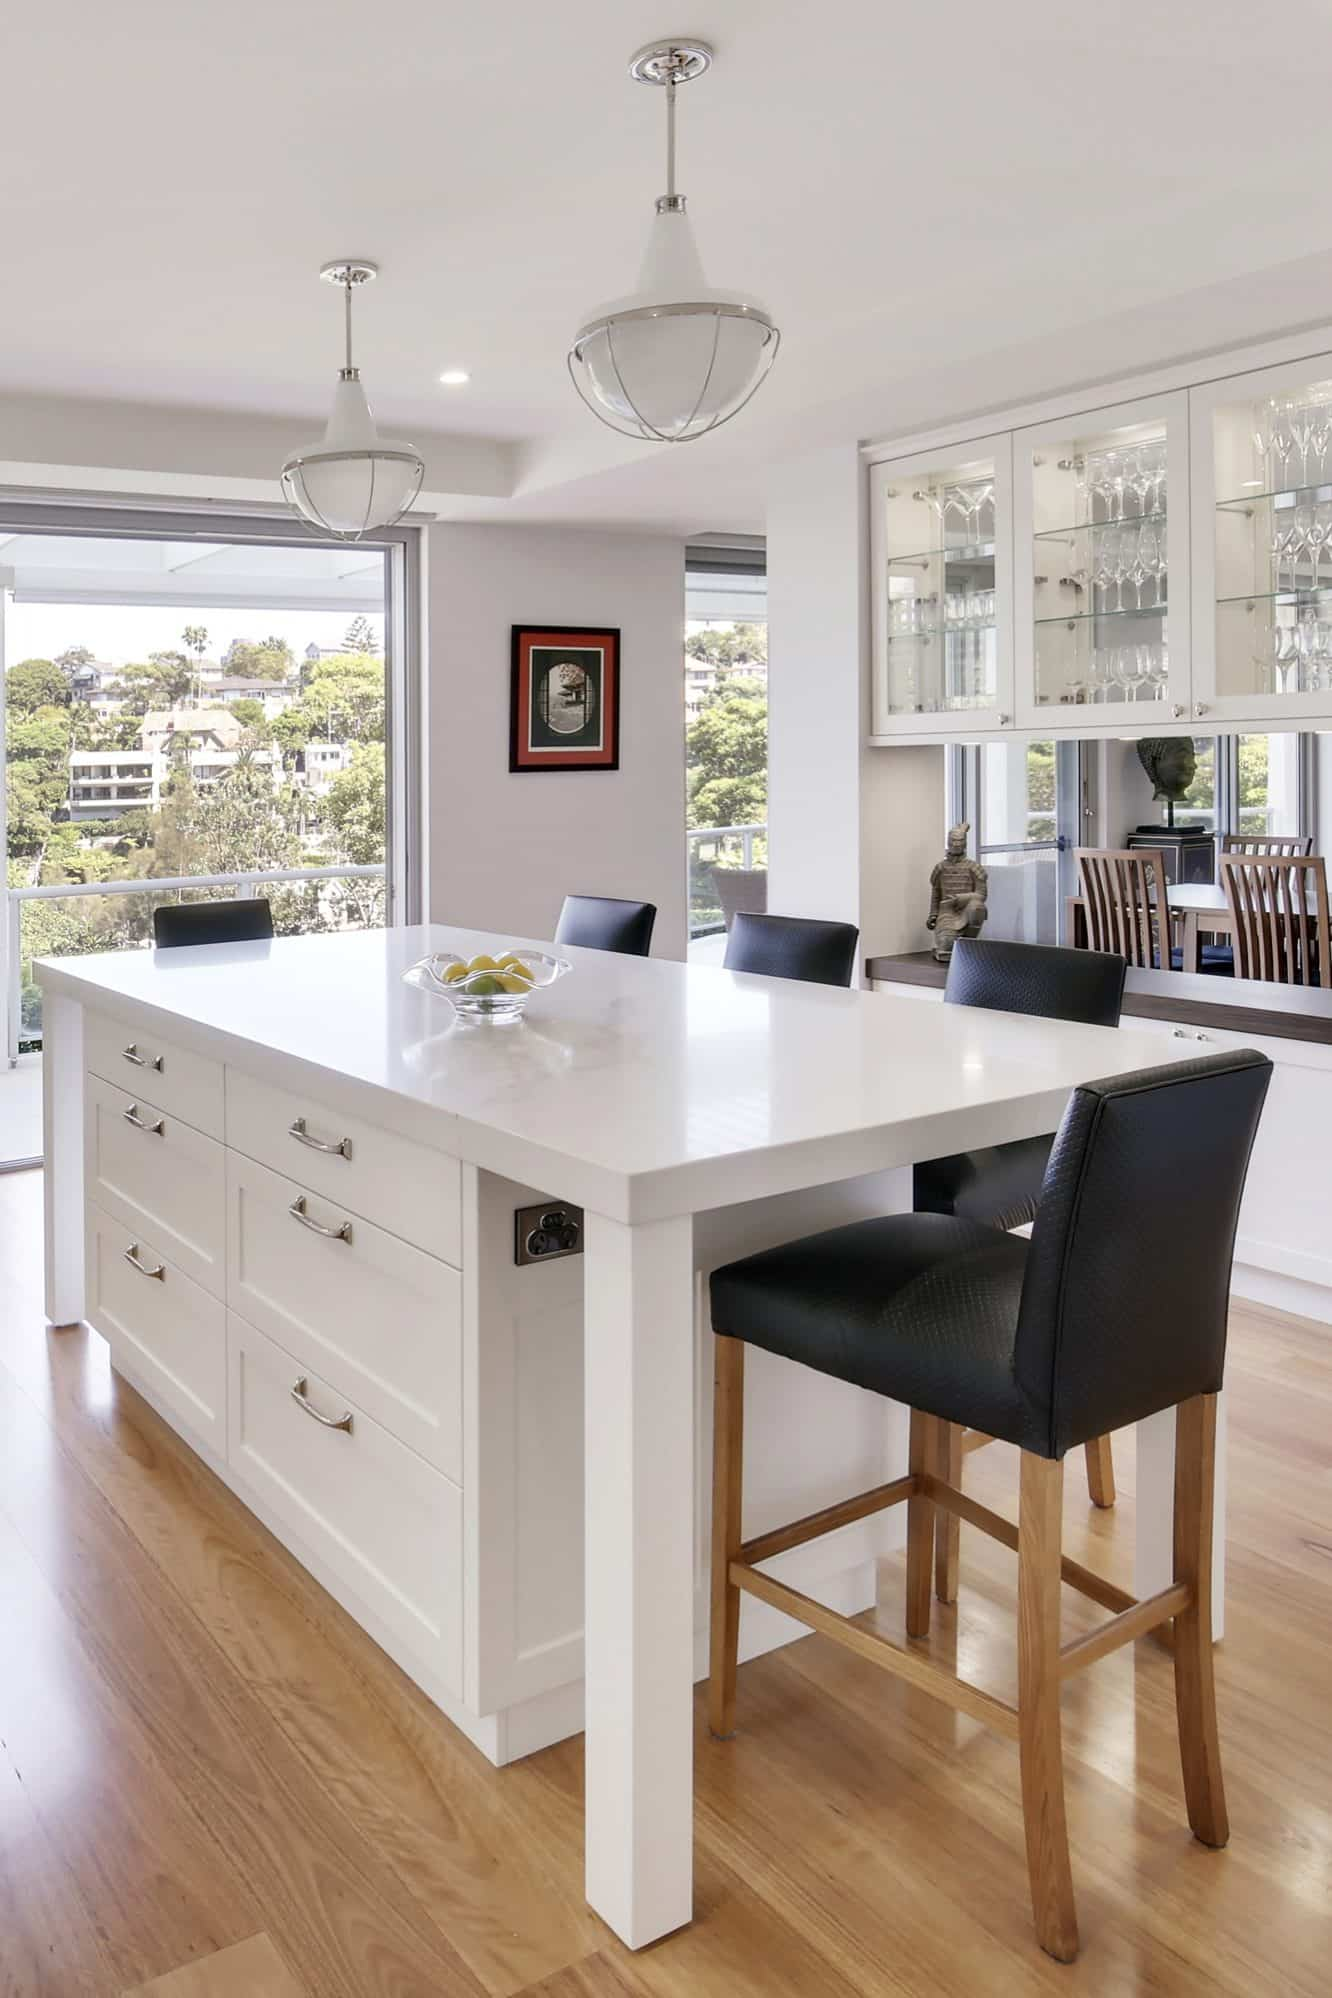 Kitchen island with table legs